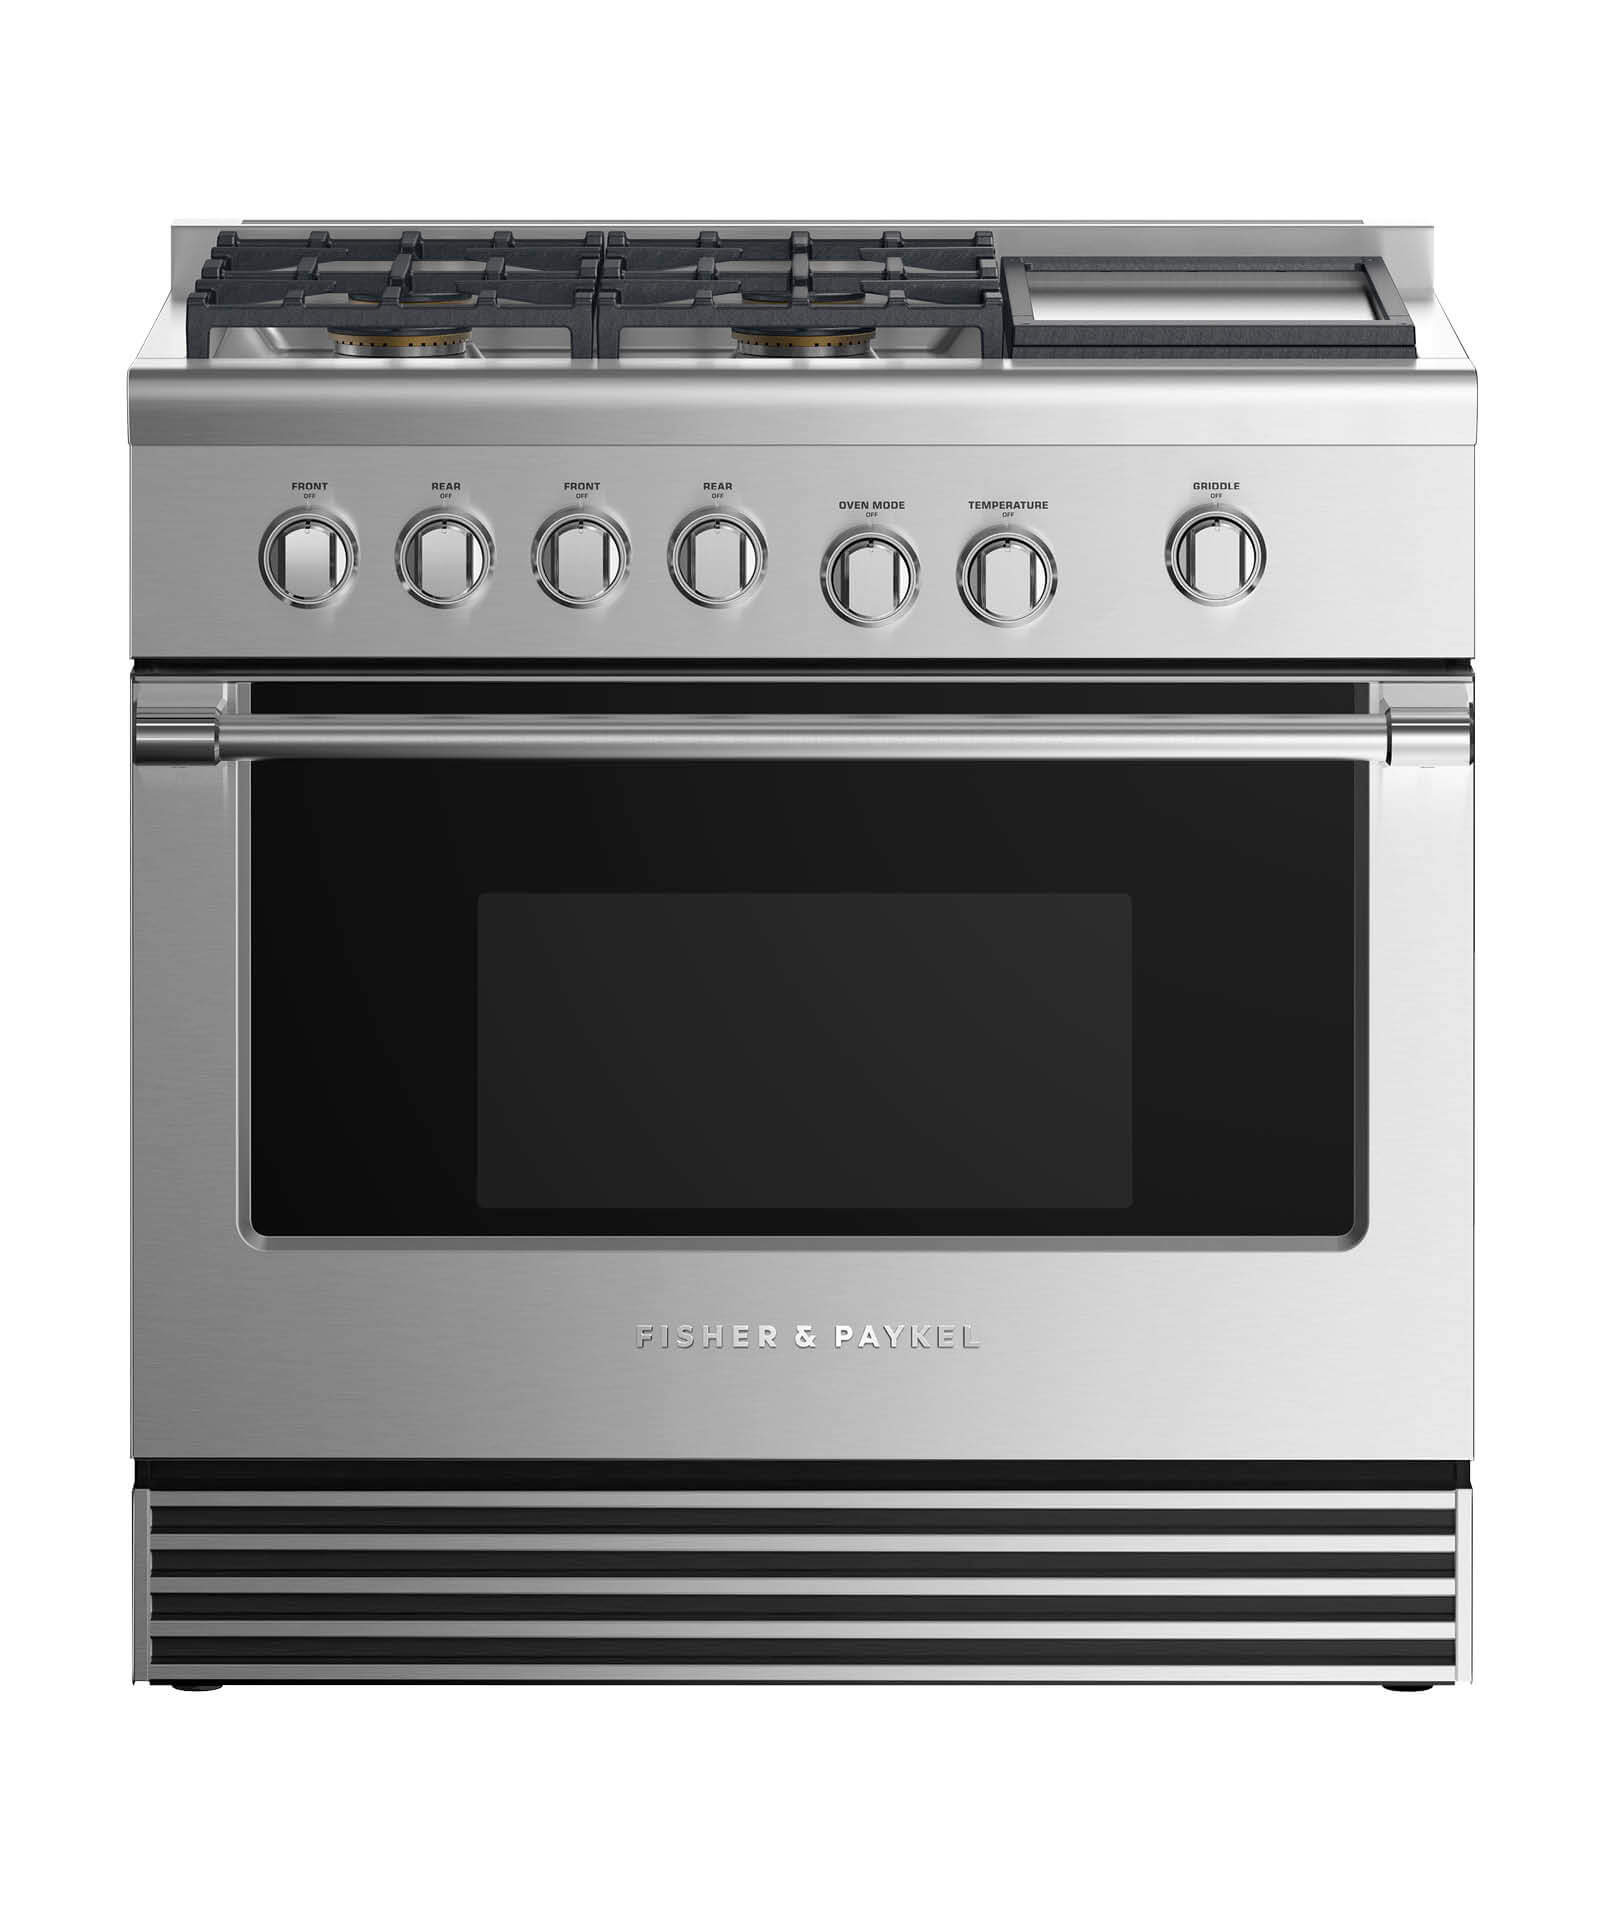 "Fisher and Paykel Gas Range 36"", 4 Burners with Griddle"